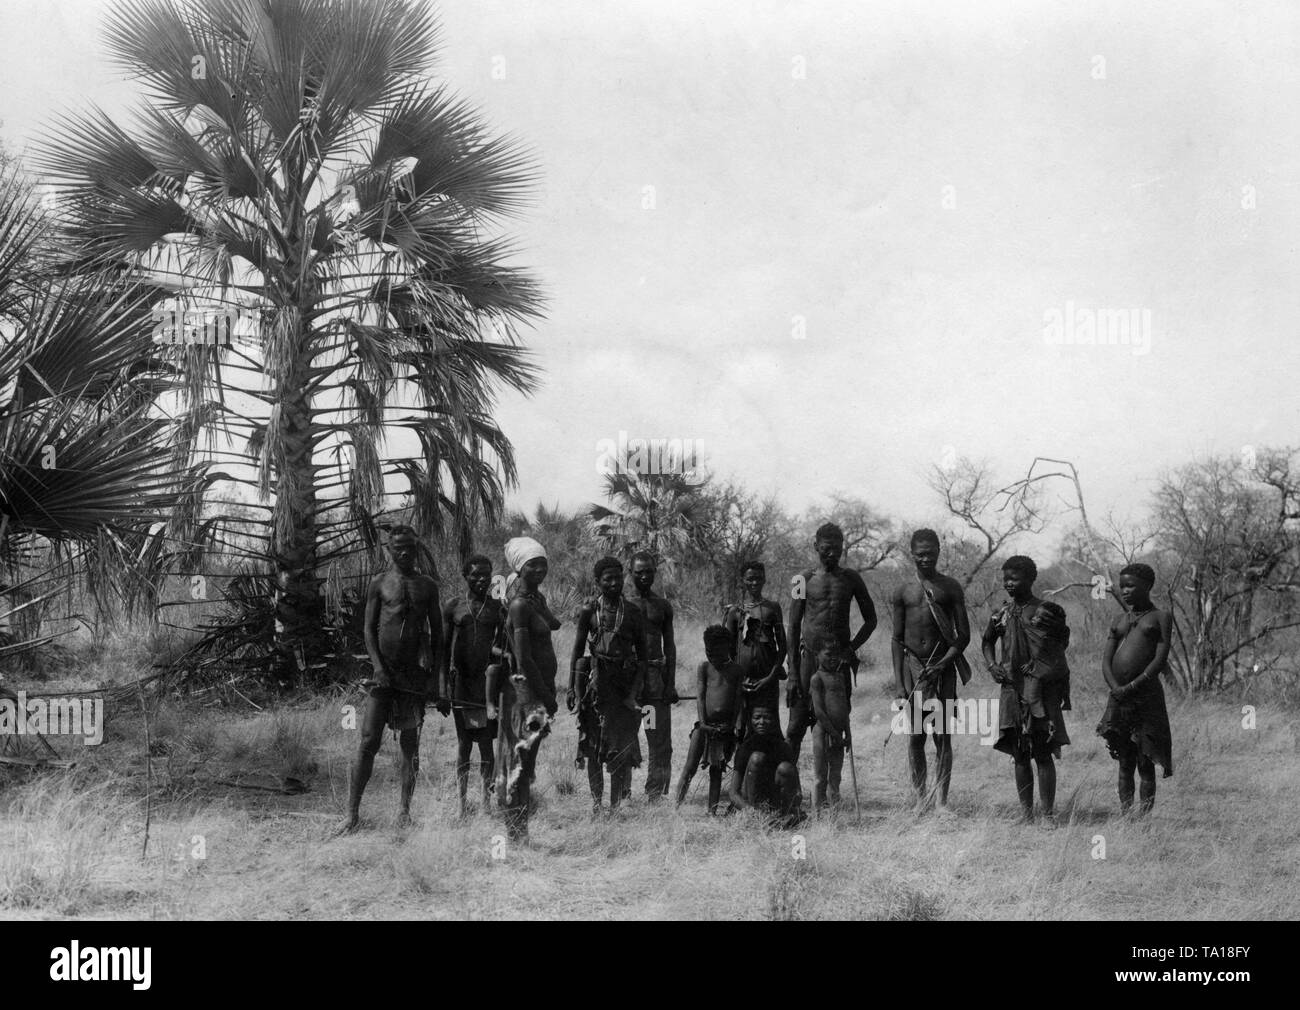 A San (Bushmen) family equipped with hunting weapons on a grassy area in German Southwest Africa. - Stock Image